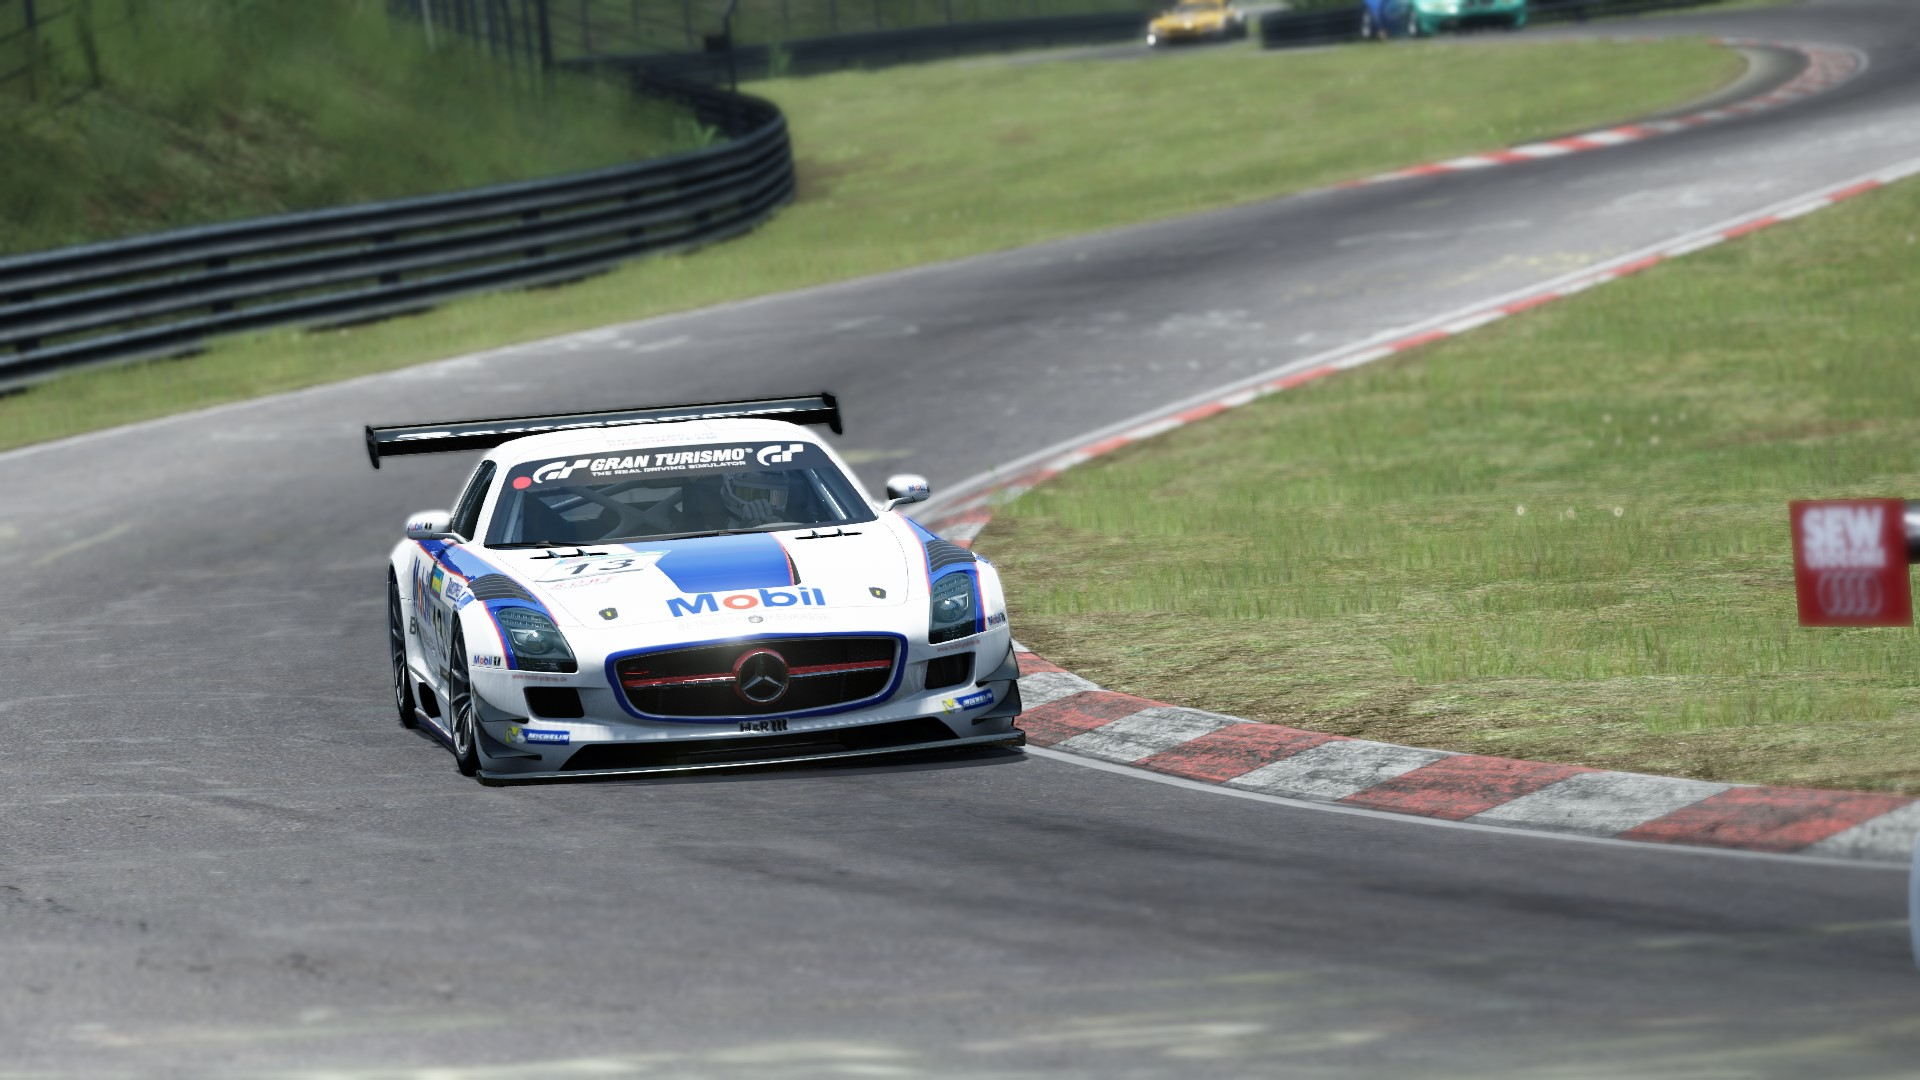 Screenshot_mercedes_sls_gt3_ks_nordschleife_29-3-115-18-57-56.jpg